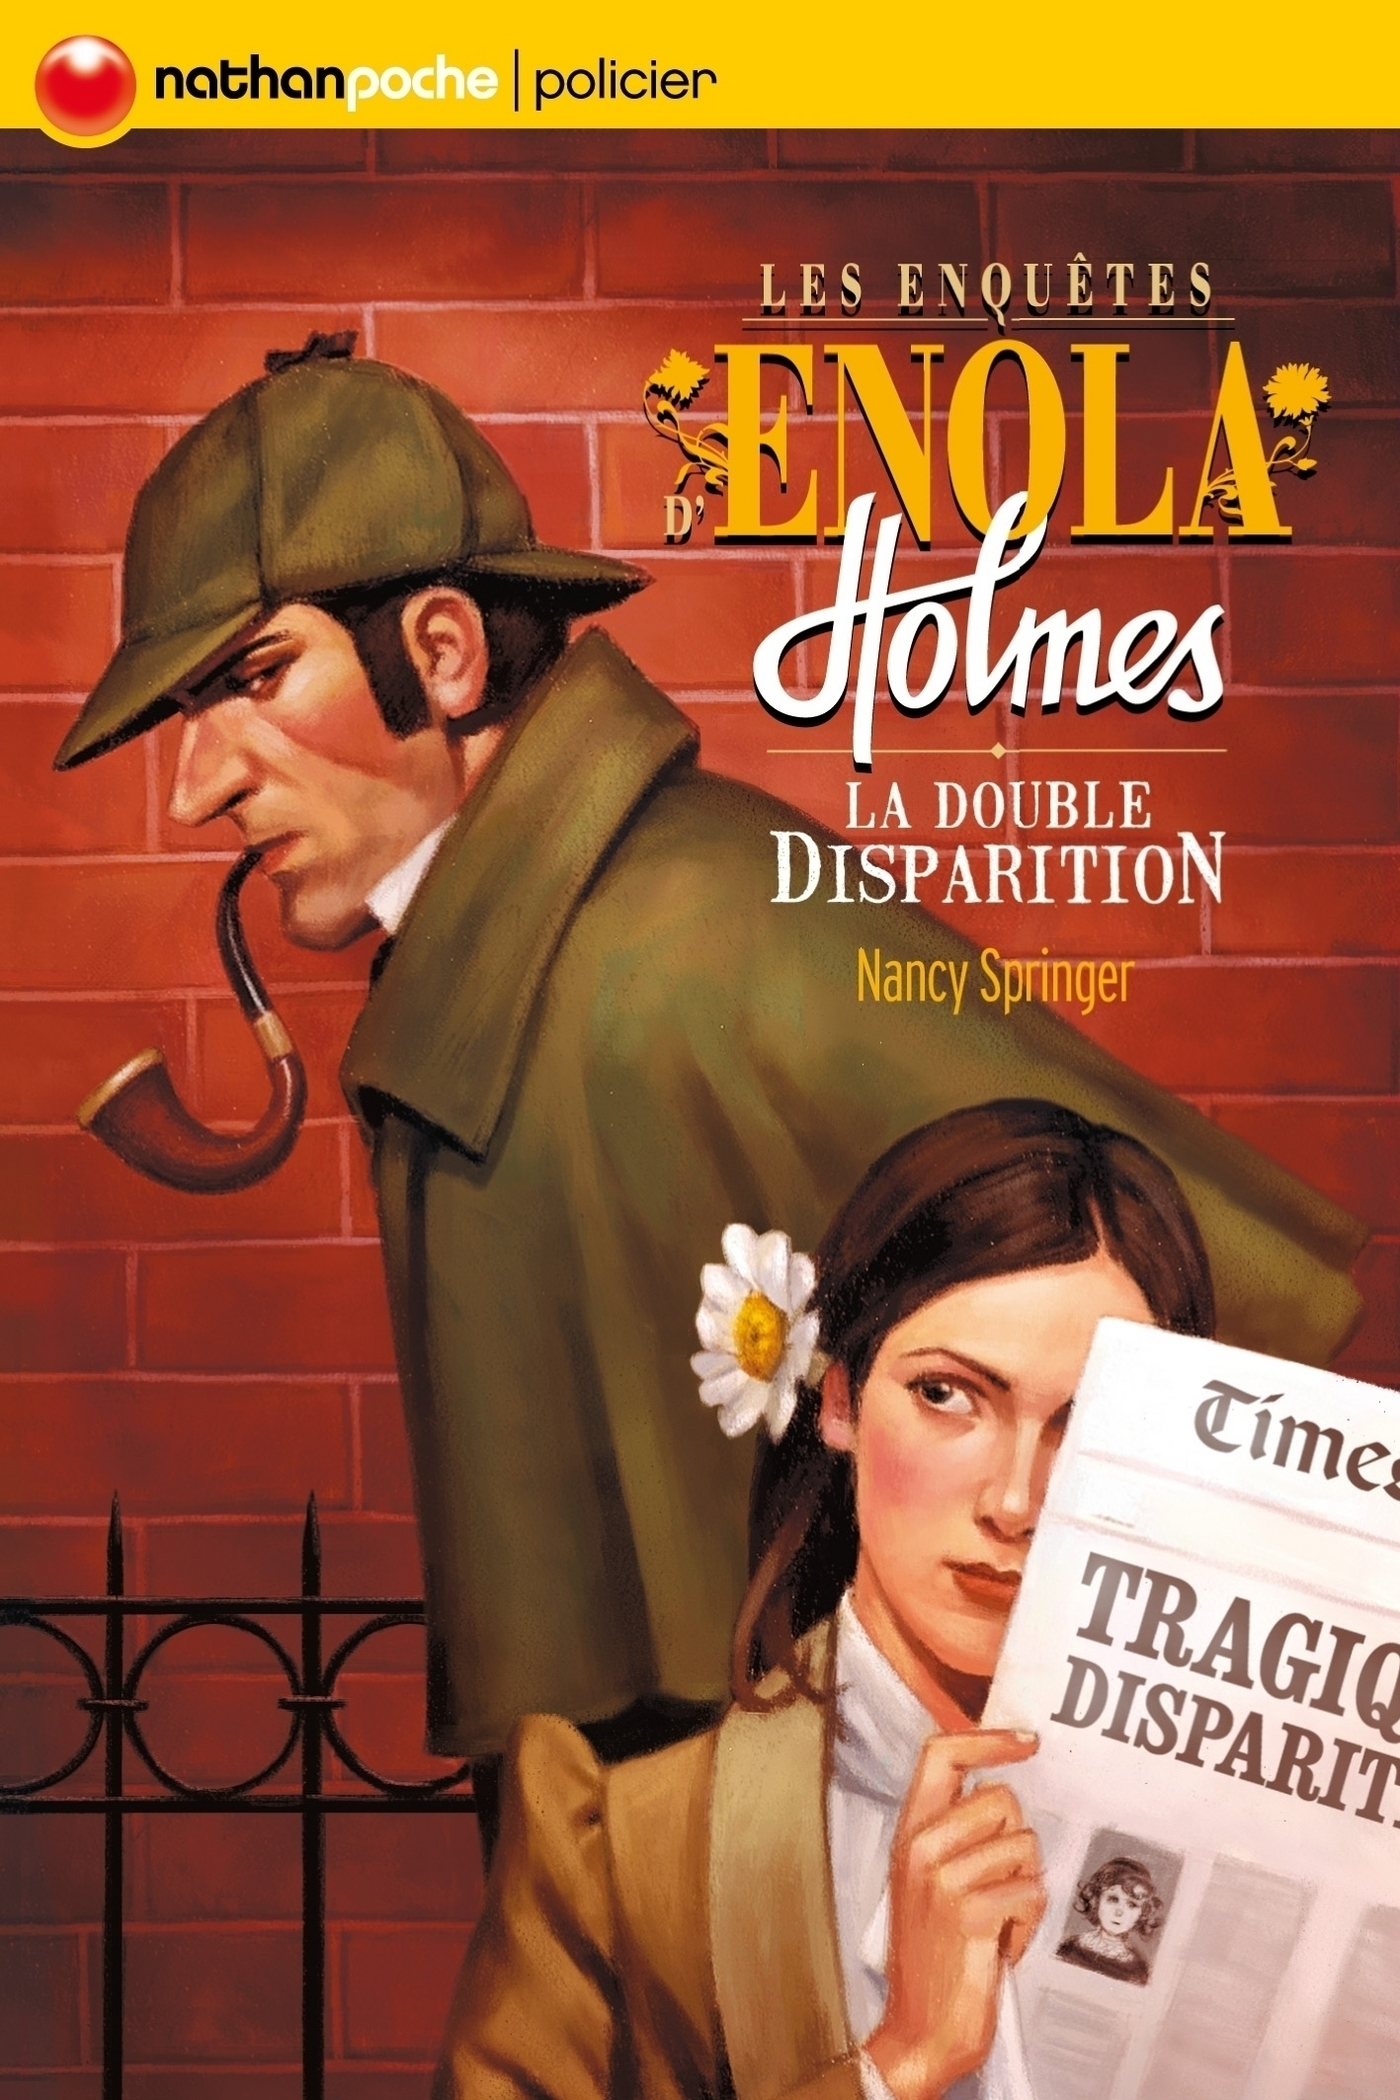 Les enquêtes d'Enola Holmes T.1 : La double disparition - Nancy Springer